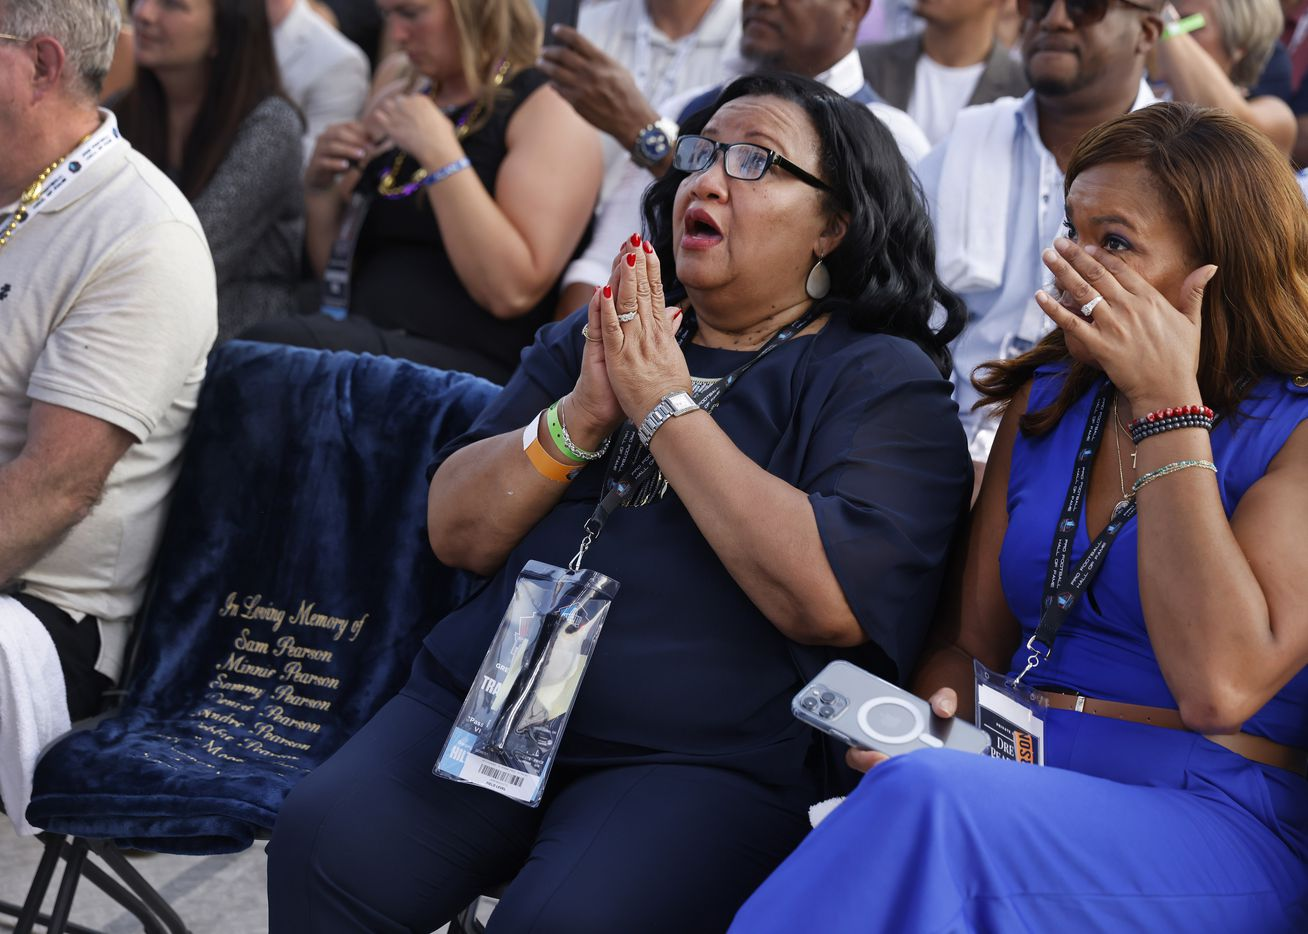 Sandra Pearson Hill (left), sister of Pro Football Hall of Fame inductee Drew Pearson of the Dallas Cowboys, looks skyward next to an empty chair bearing the names of their parents, family members and friends who have passed away. Her oldest daughter Tori Nichole Pearson wipes away a tear as Drew acknowledged them in his acceptance speech during the Class of 2021 enshrinement ceremony at Tom Benson Hall of Fame Stadium in Canton, Ohio, Sunday, August 8, 2021. (Tom Fox/The Dallas Morning News)